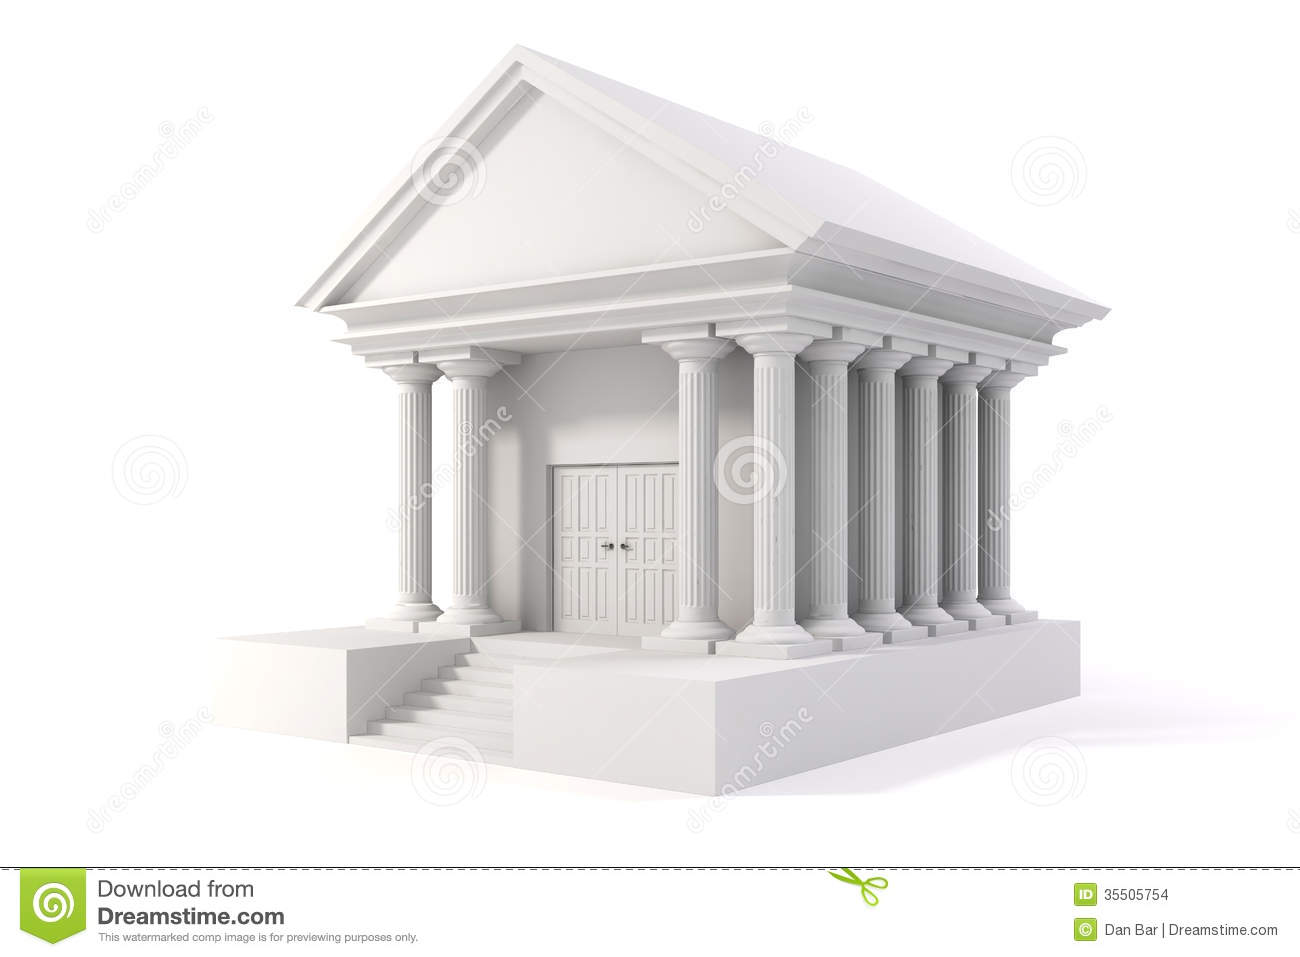 Bank building 3d icon royalty free stock image for Build house online 3d free